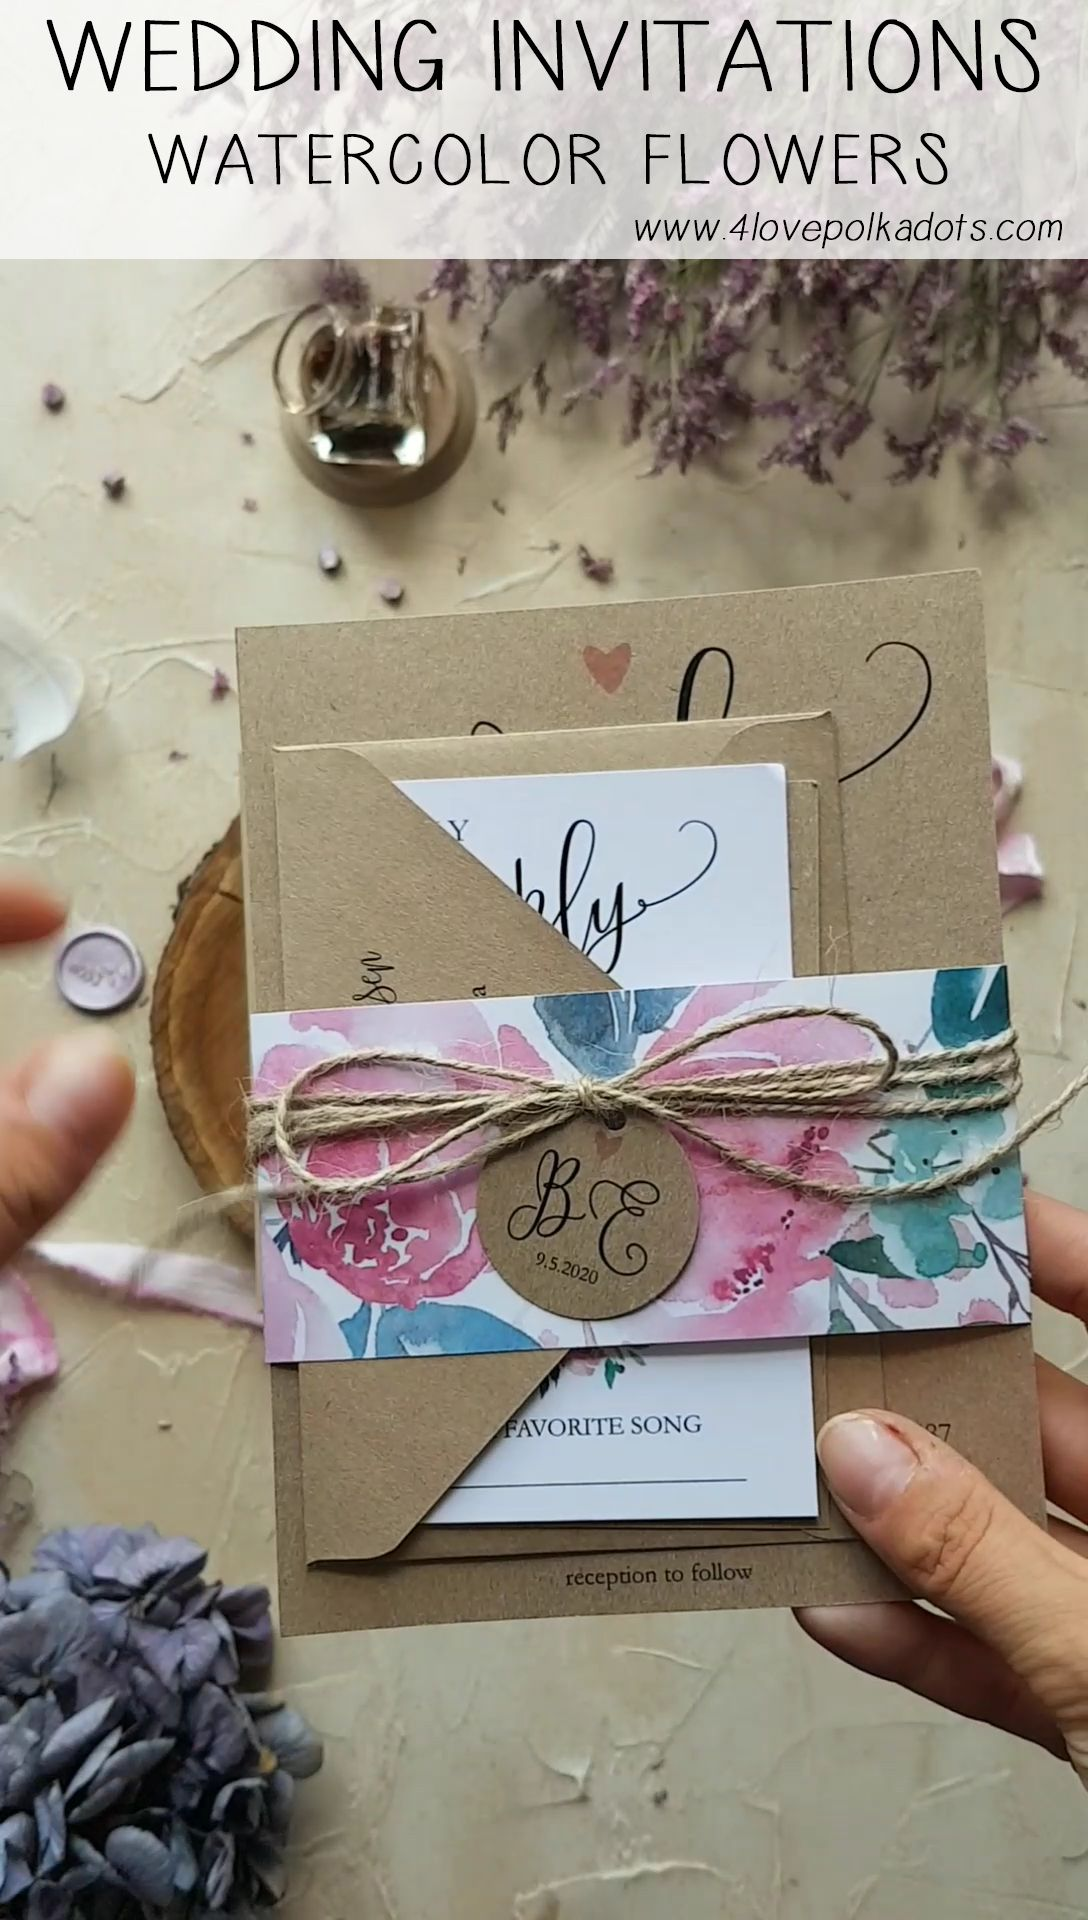 Wedding invitations with flowers  #bohemianwedding #watercolorwedding #weddingstationery #weddinginvitations